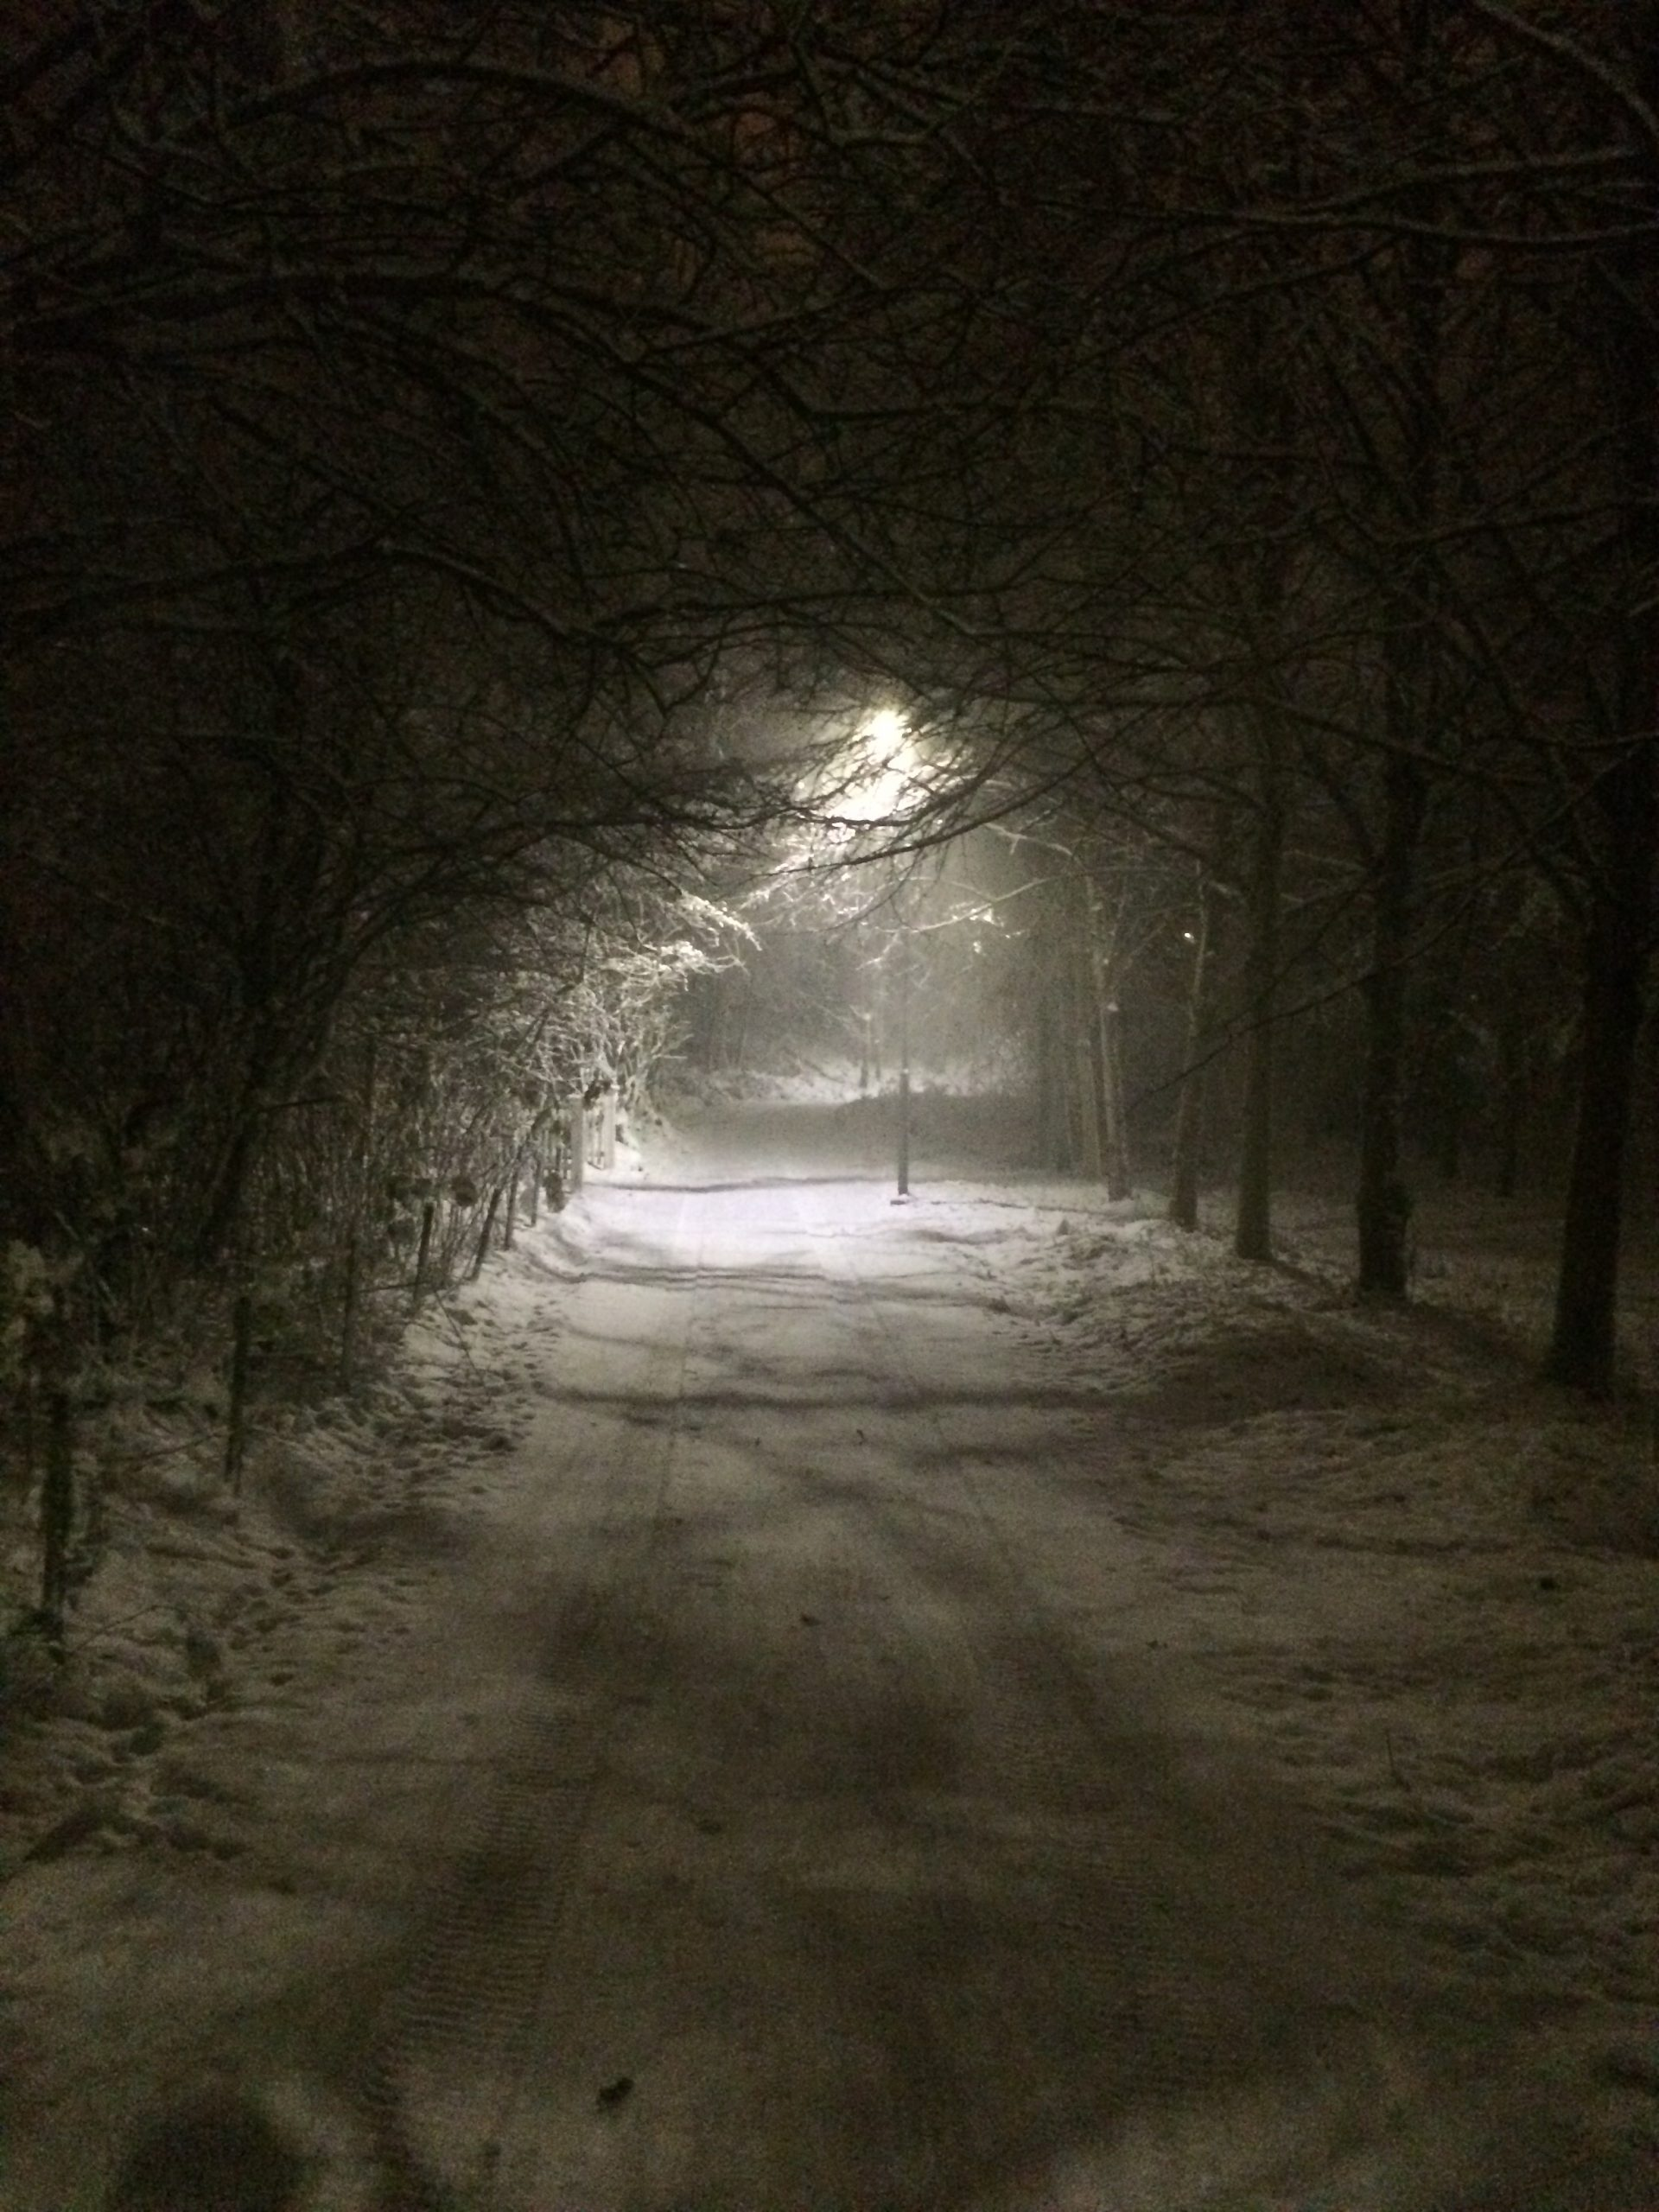 The trail pass the house - winter night